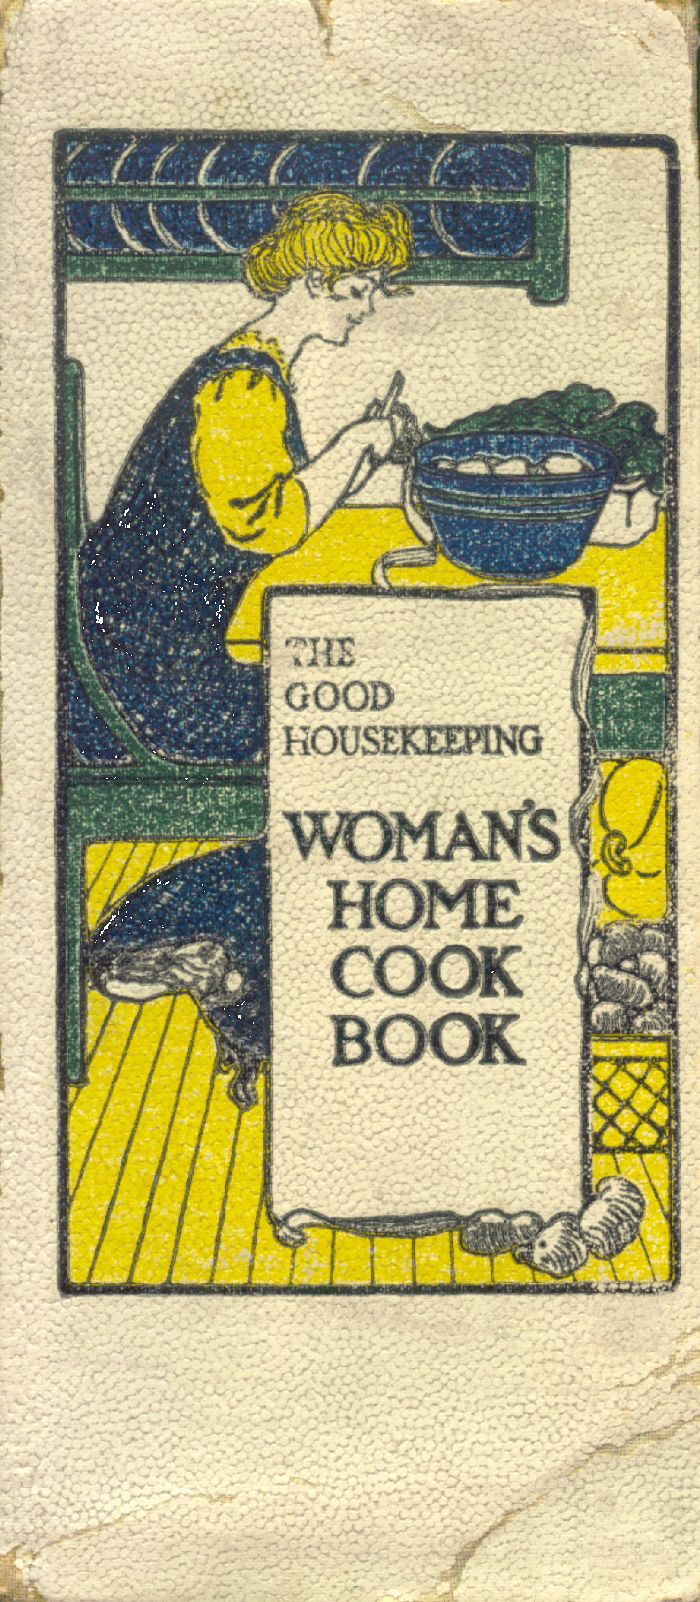 The Good Housekeeping Woman's Home Cook Book